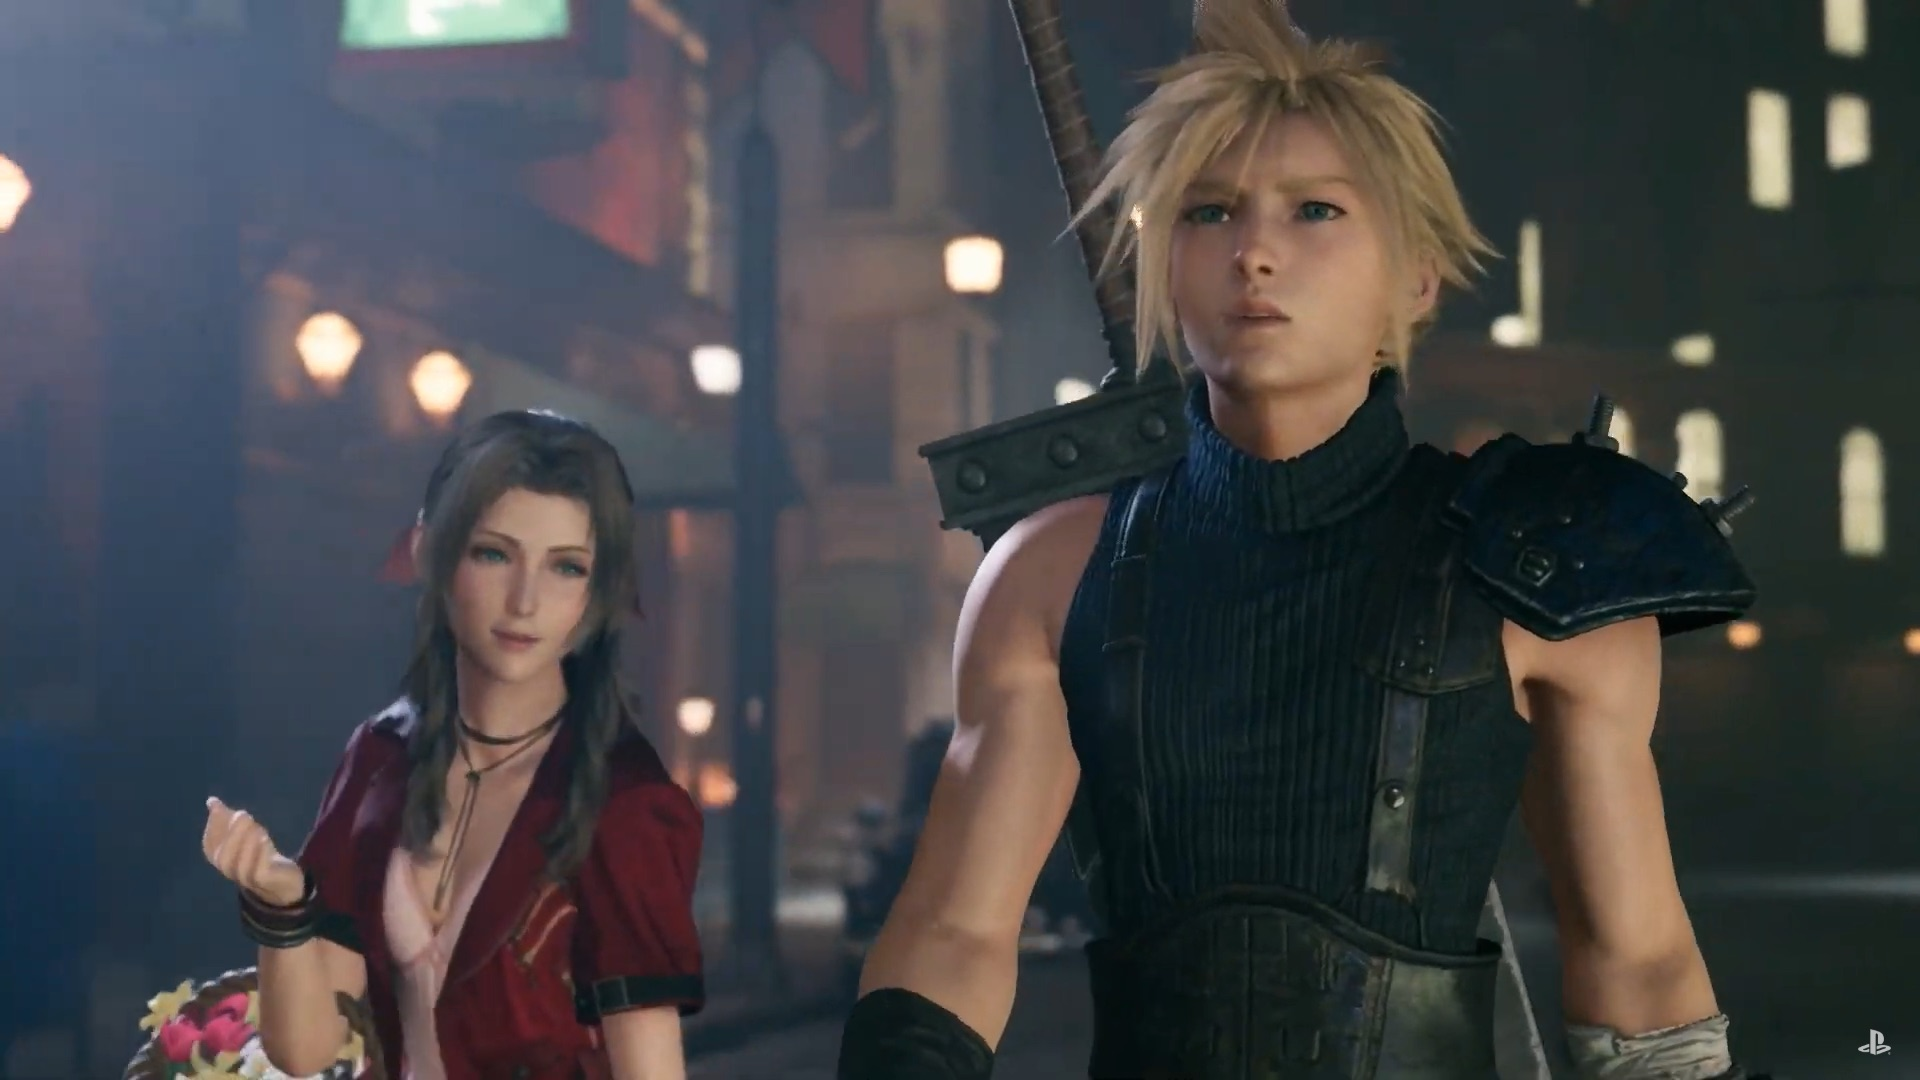 Final Fantasy Vii Remake Nuevo Trailer Datos E Imagenes